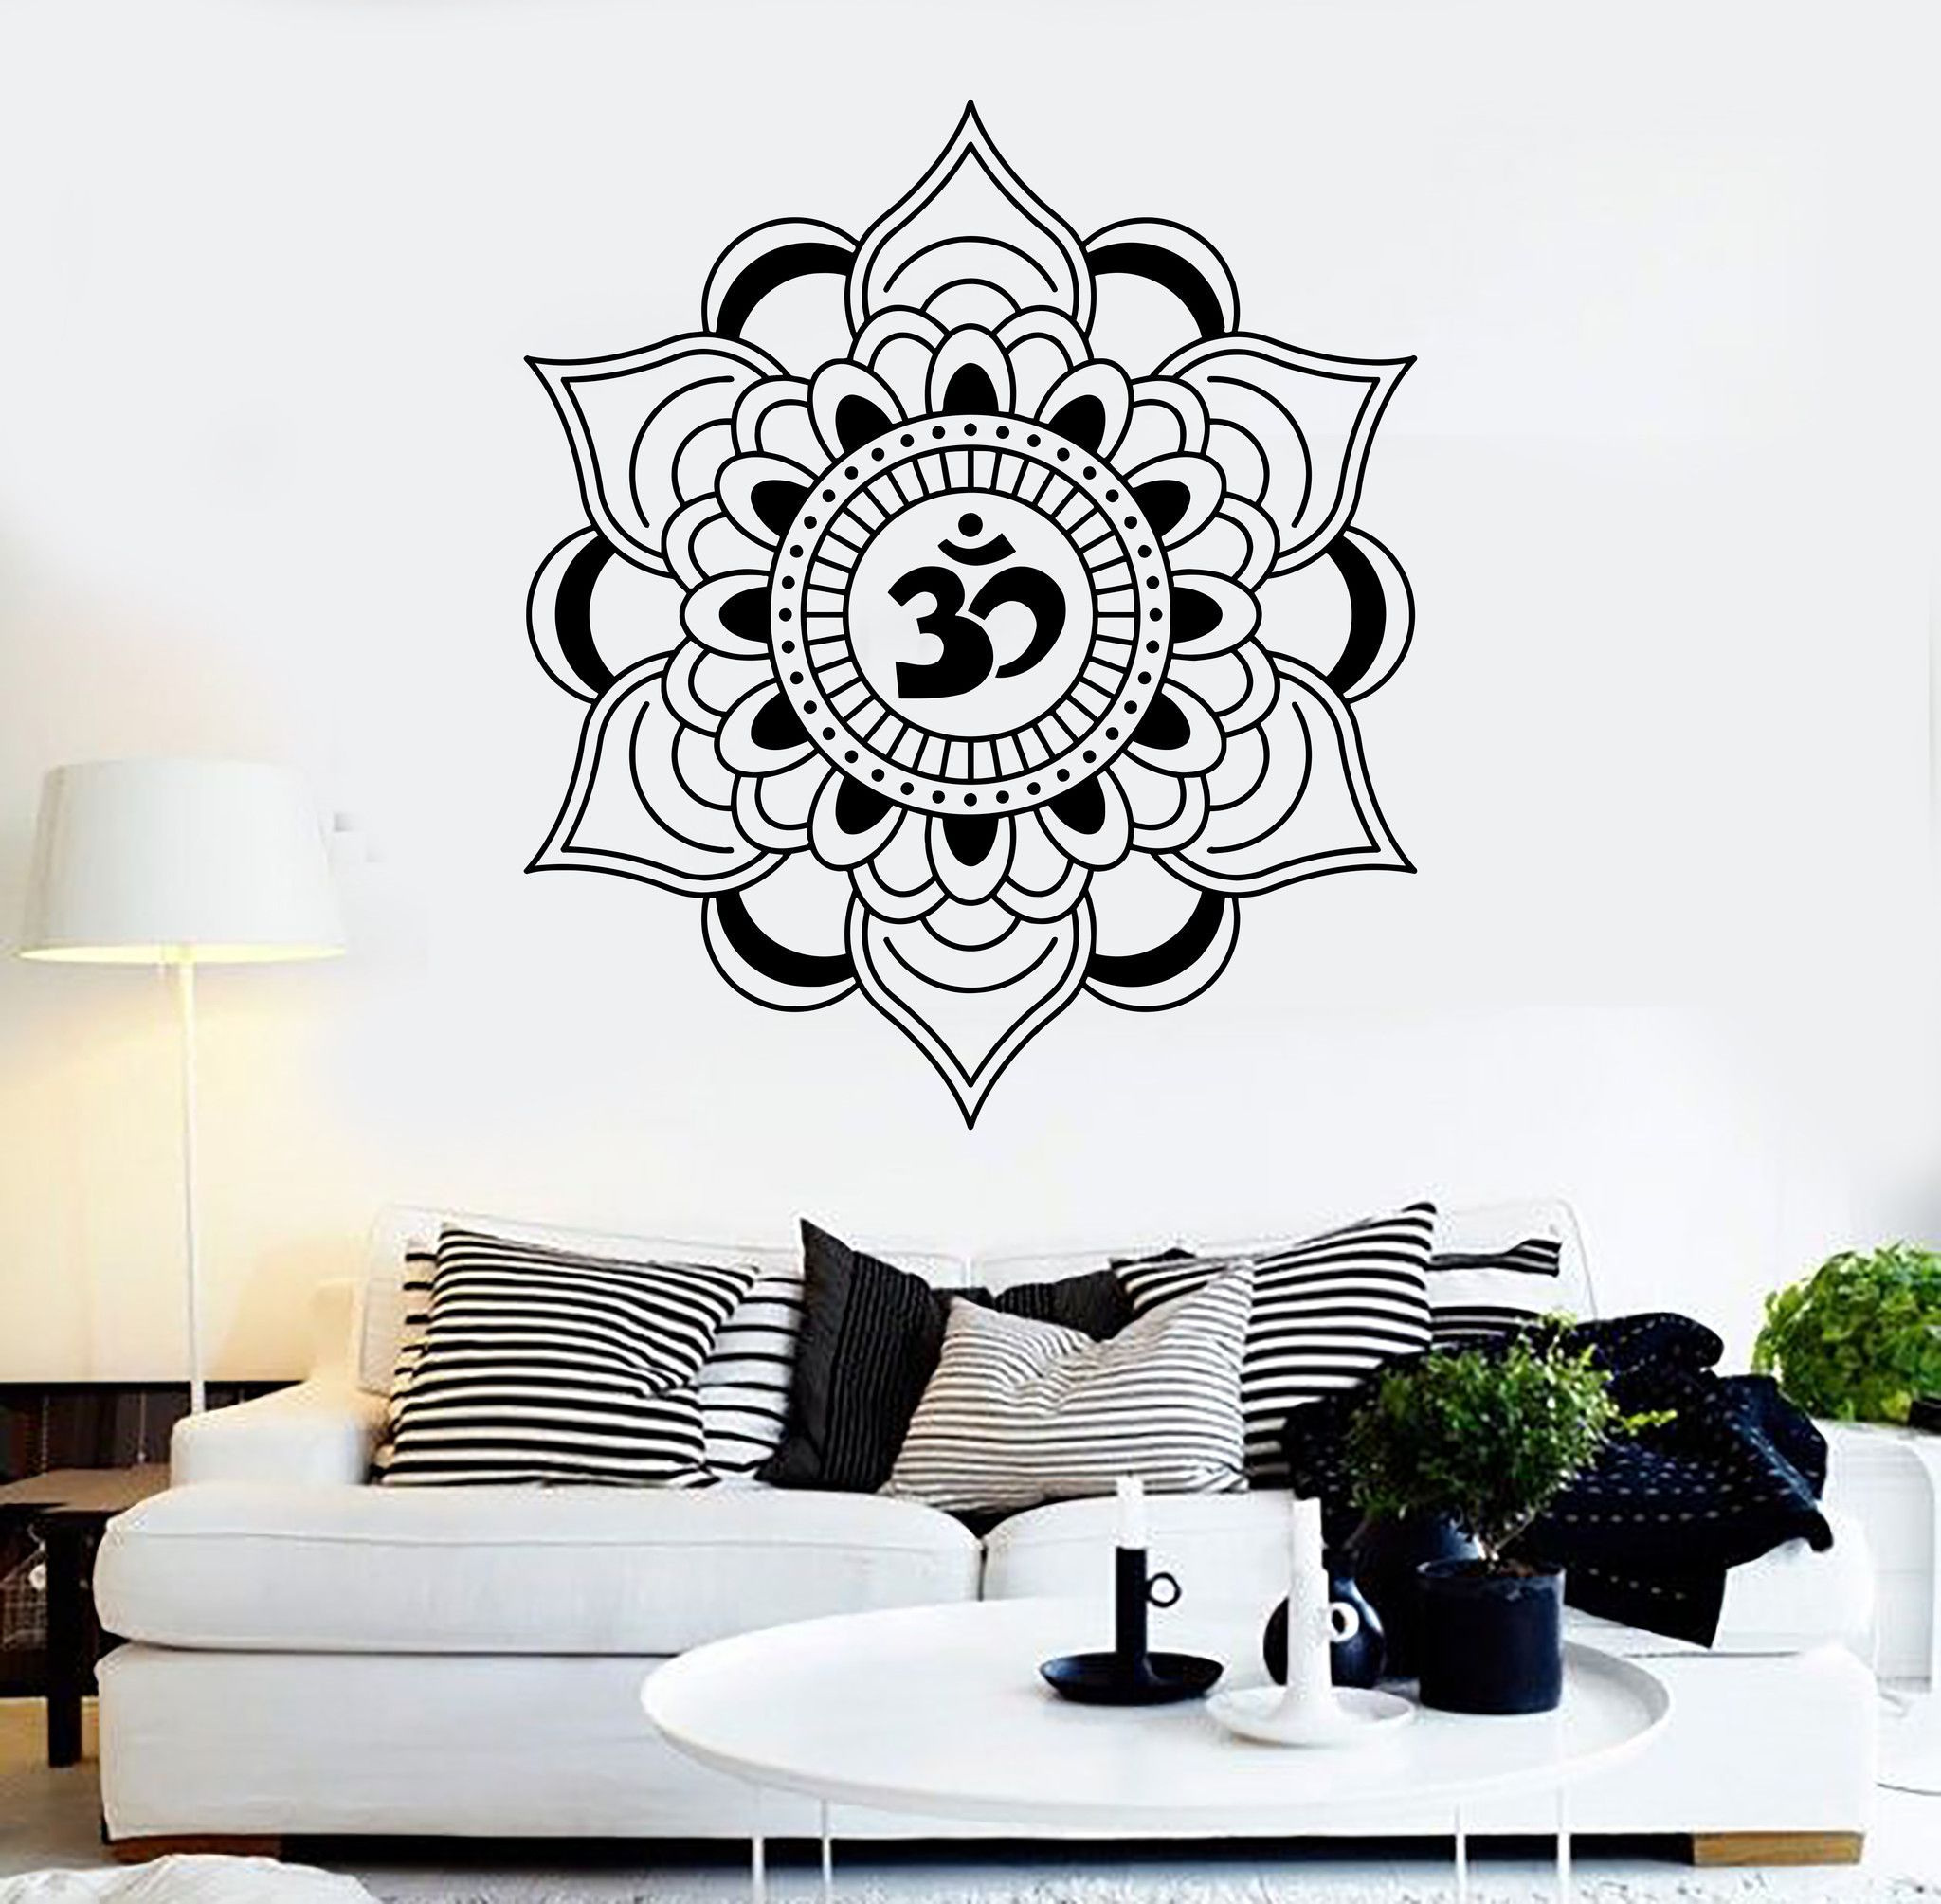 vinyl wall decal mandala lotus talisman buddhism hinduism stickers vinyl wall decal mandala lotus talisman buddhism hinduism stickers ig4051